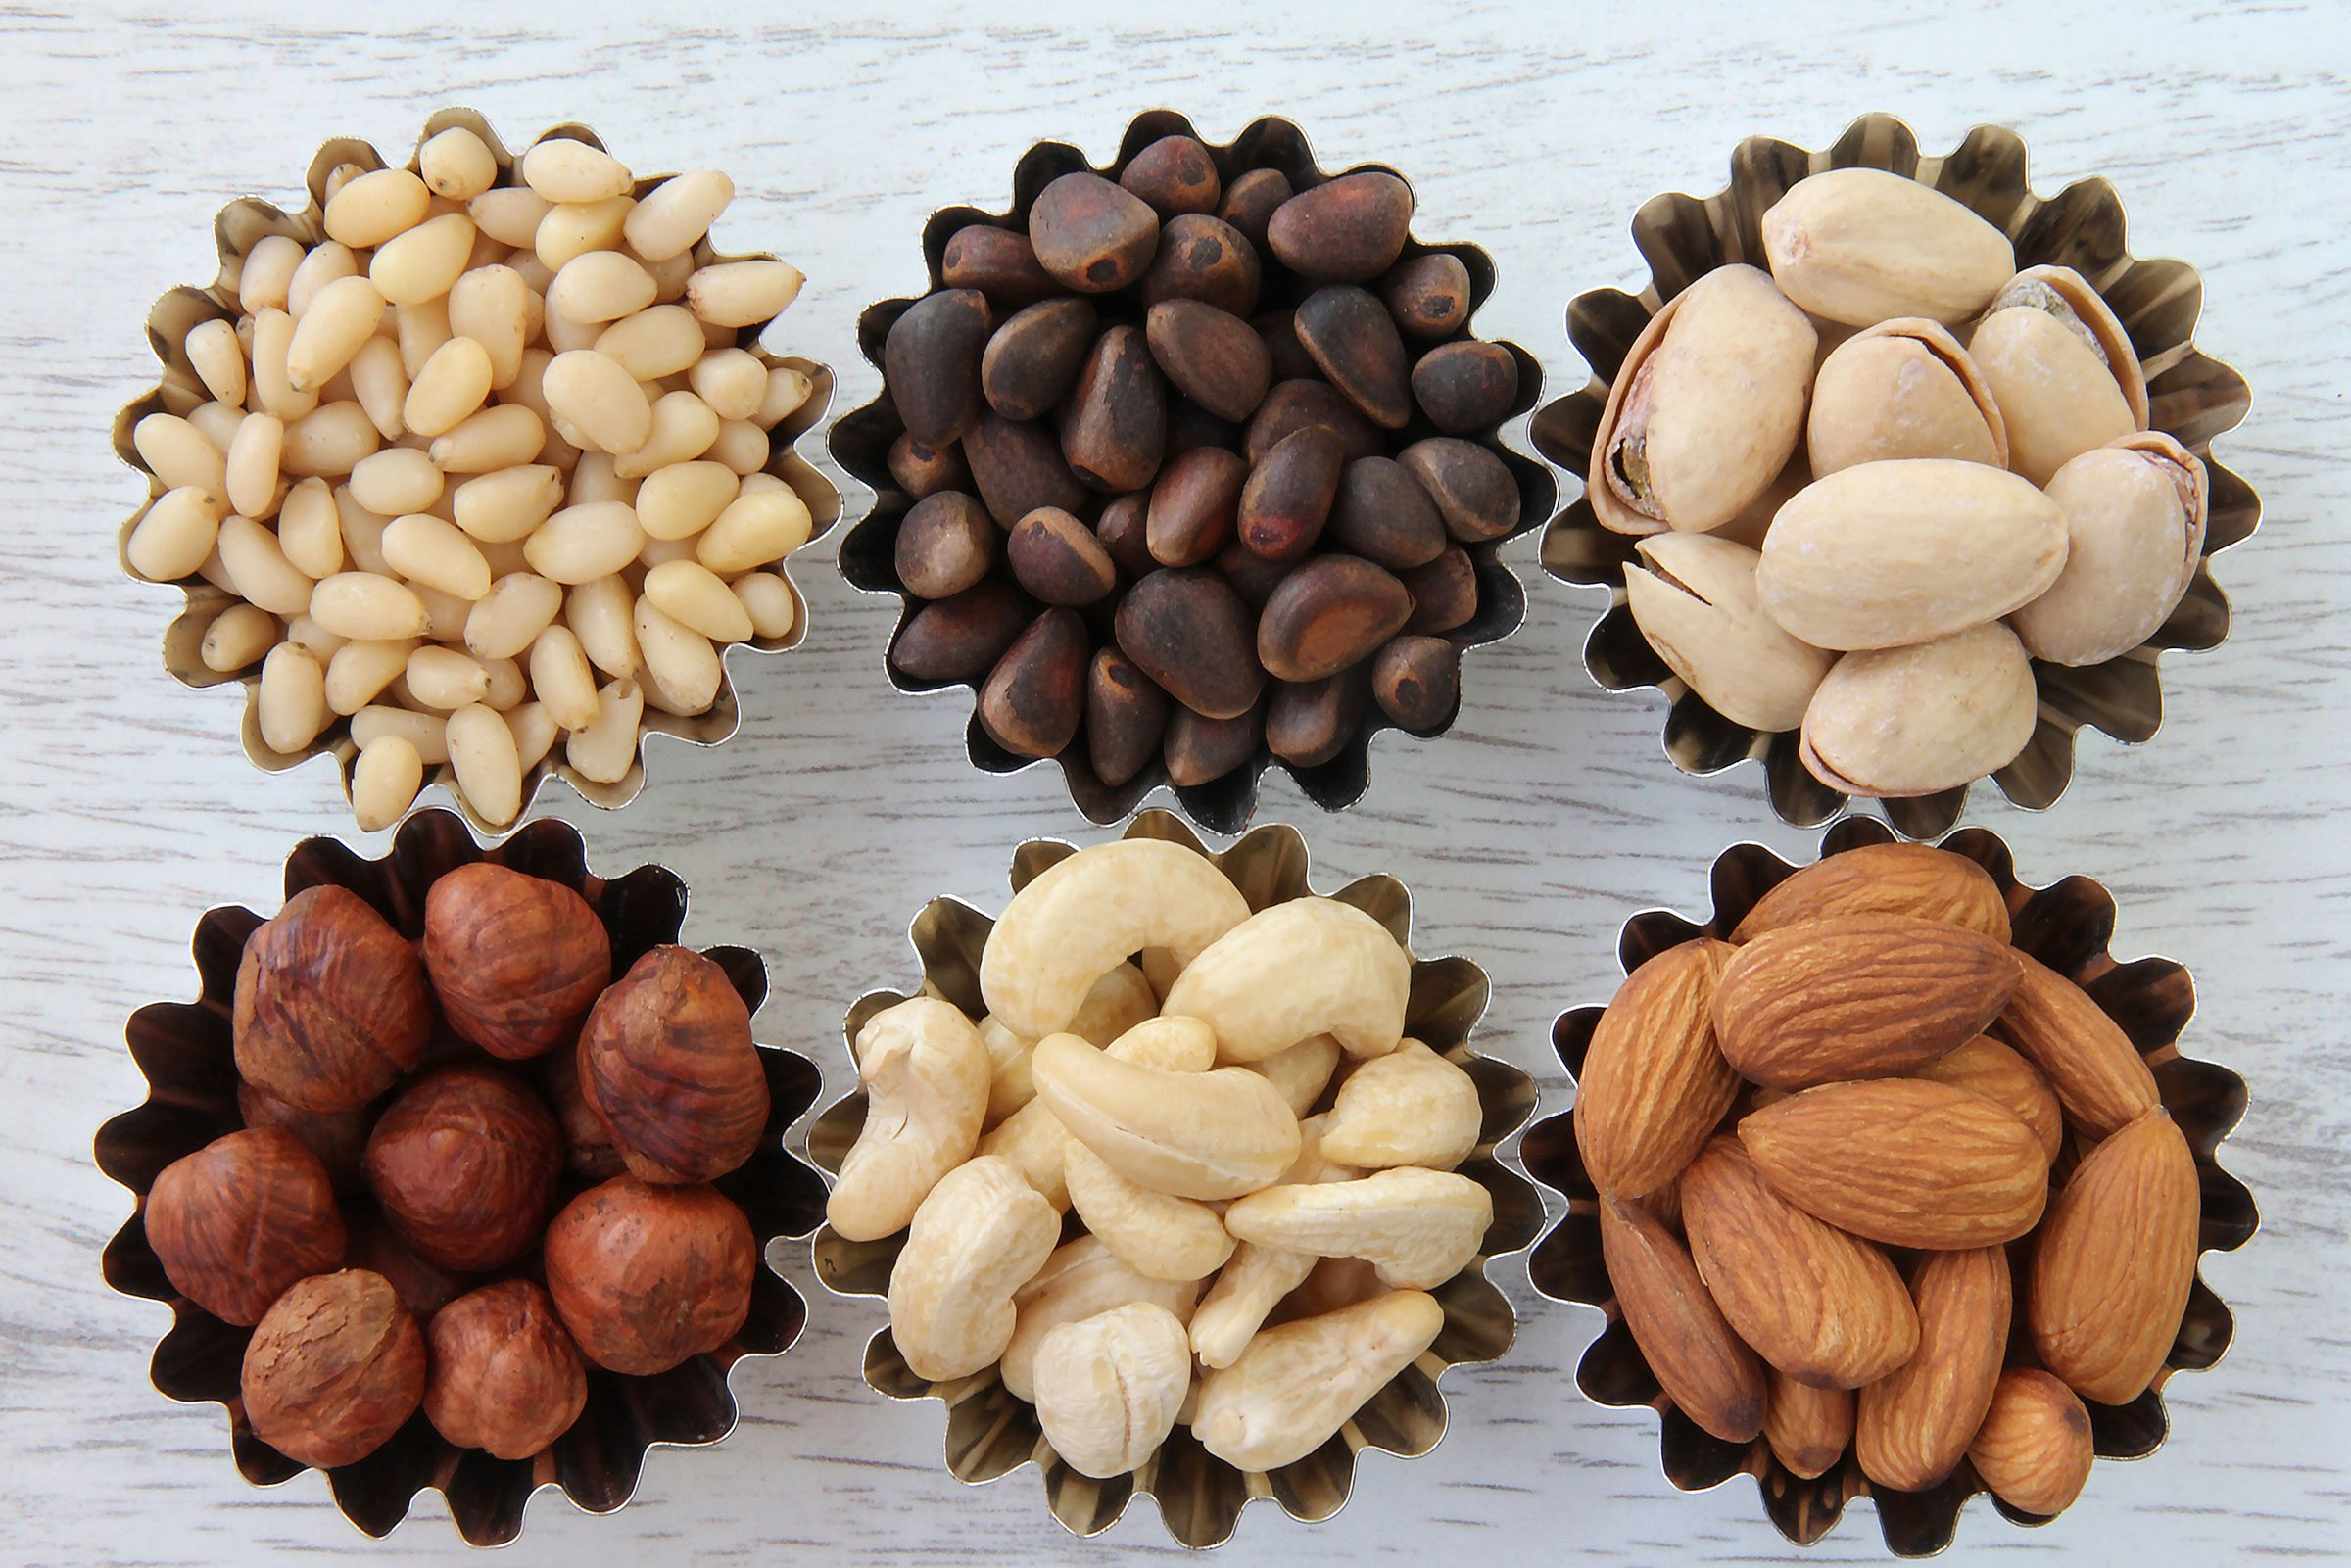 swollen feet | little cups of nuts including almonds, pine nuts, and pistachios